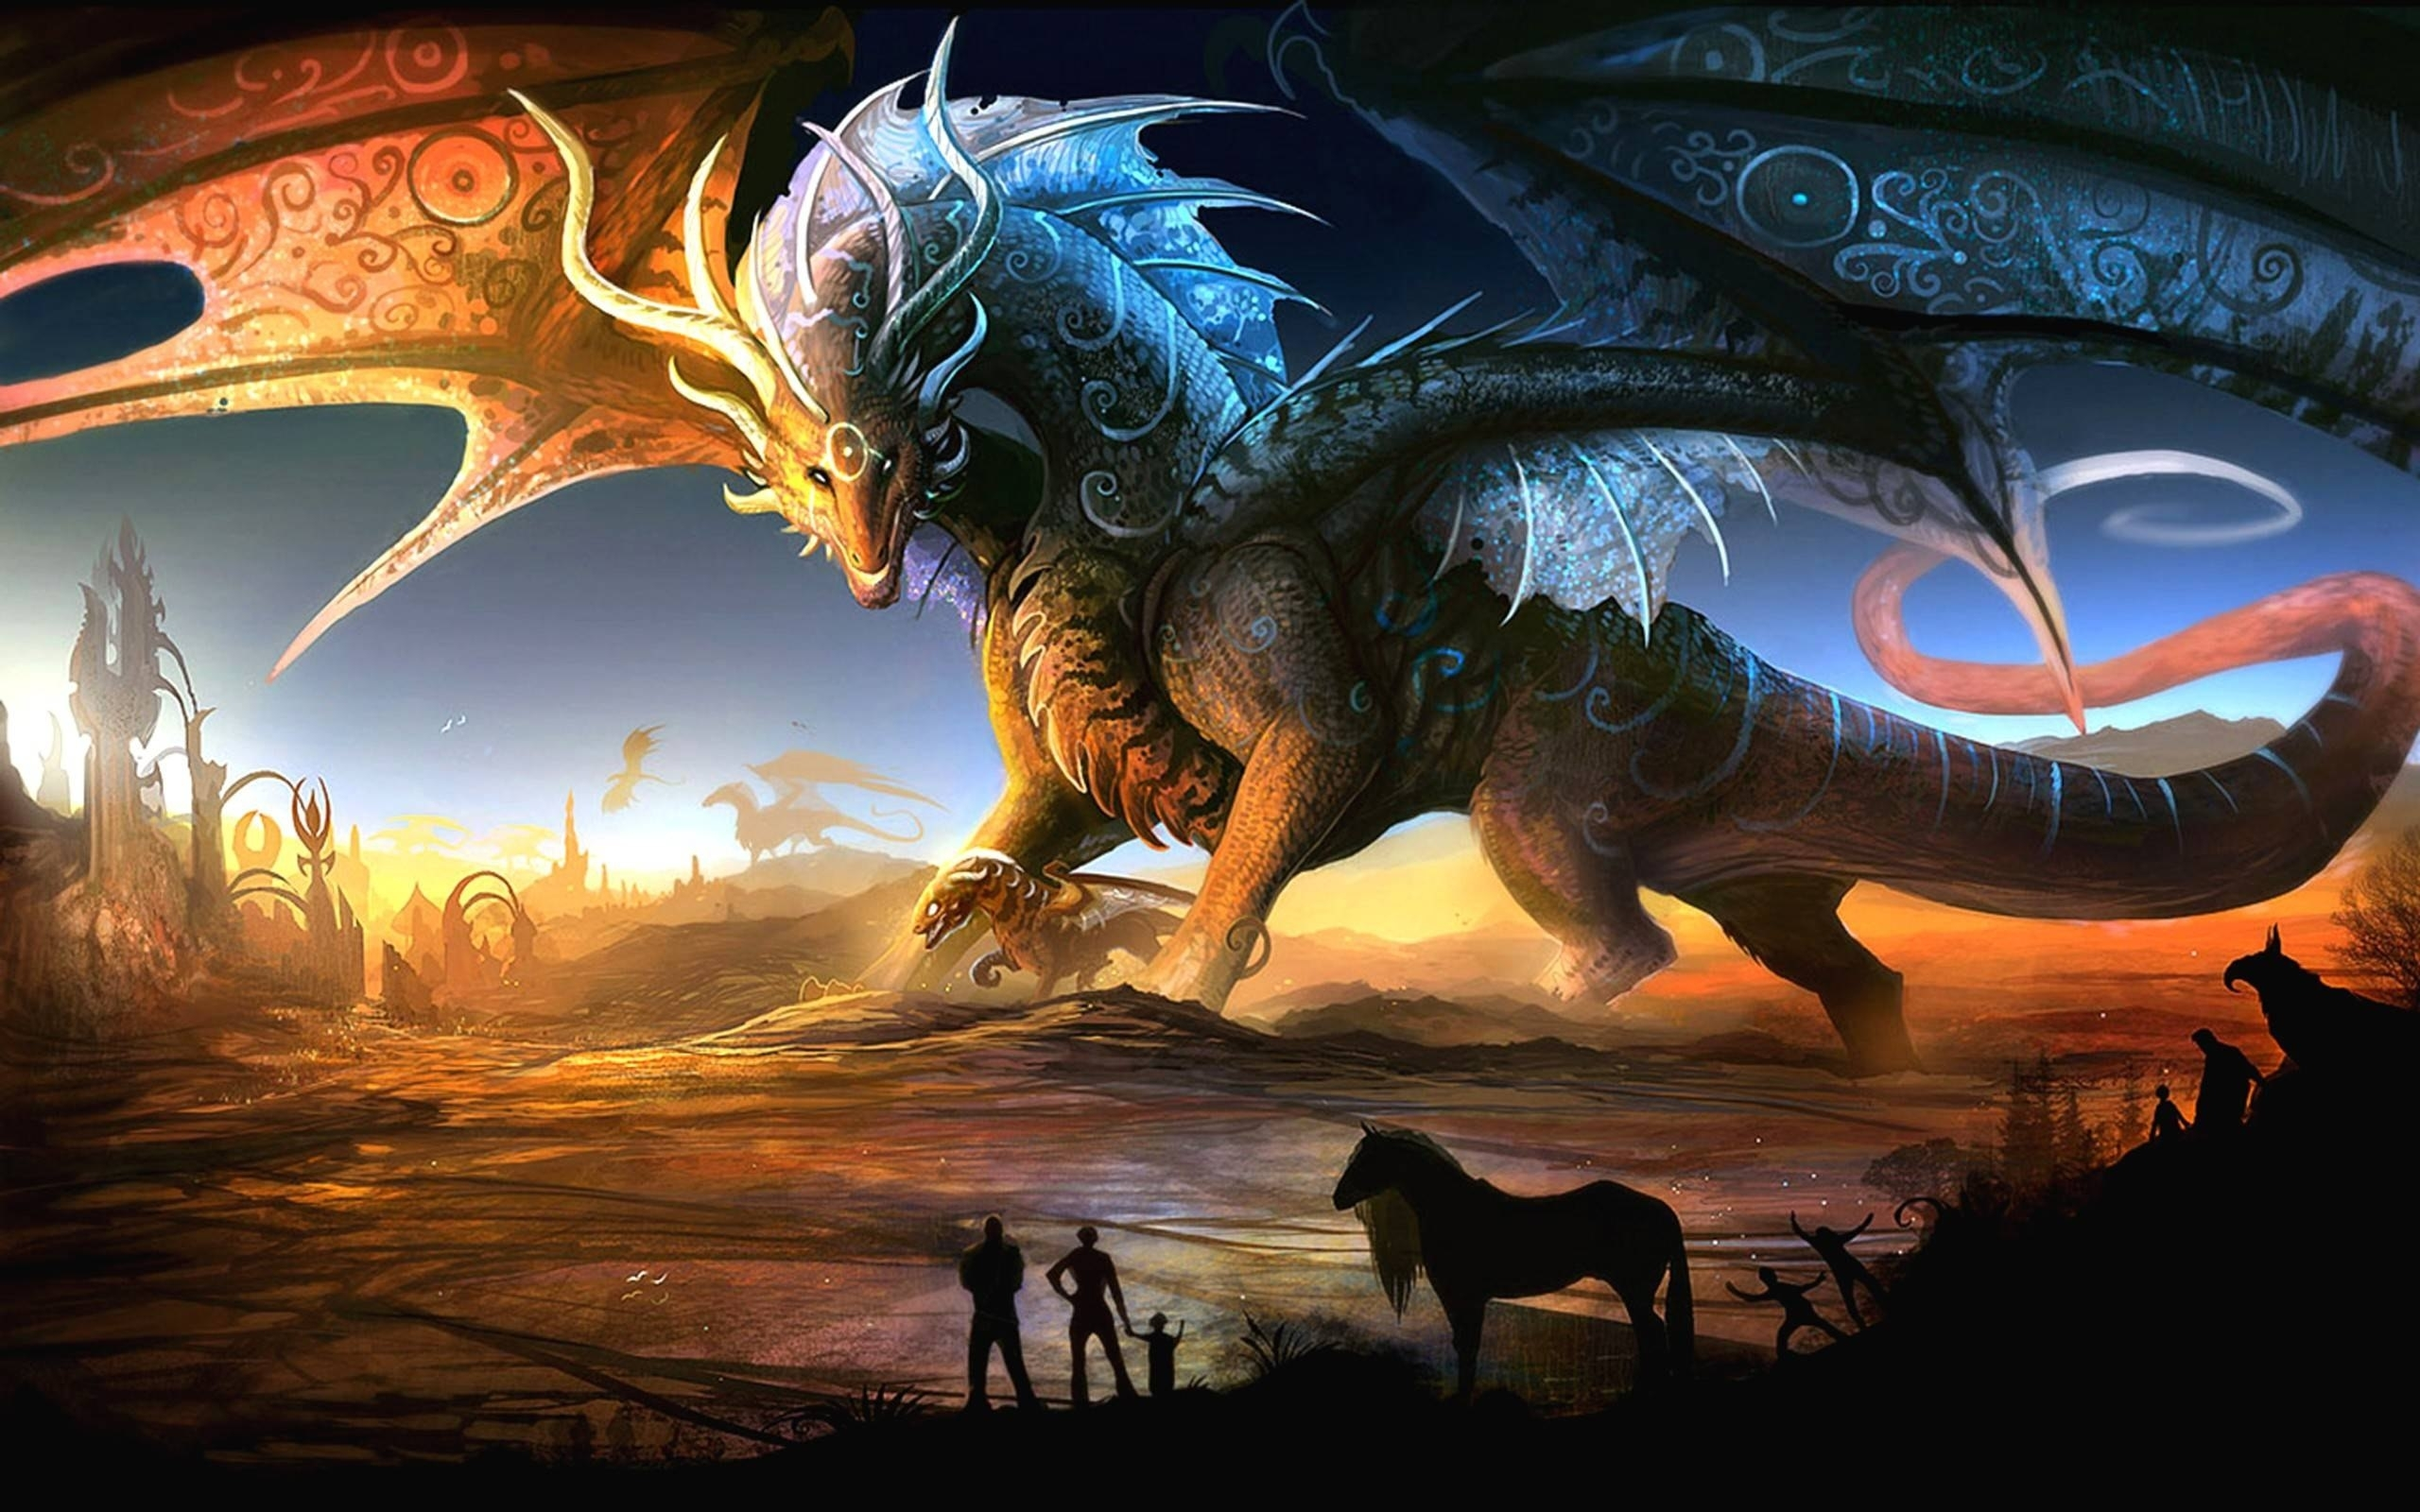 dragon widescreen wallpapers 06058 - baltana